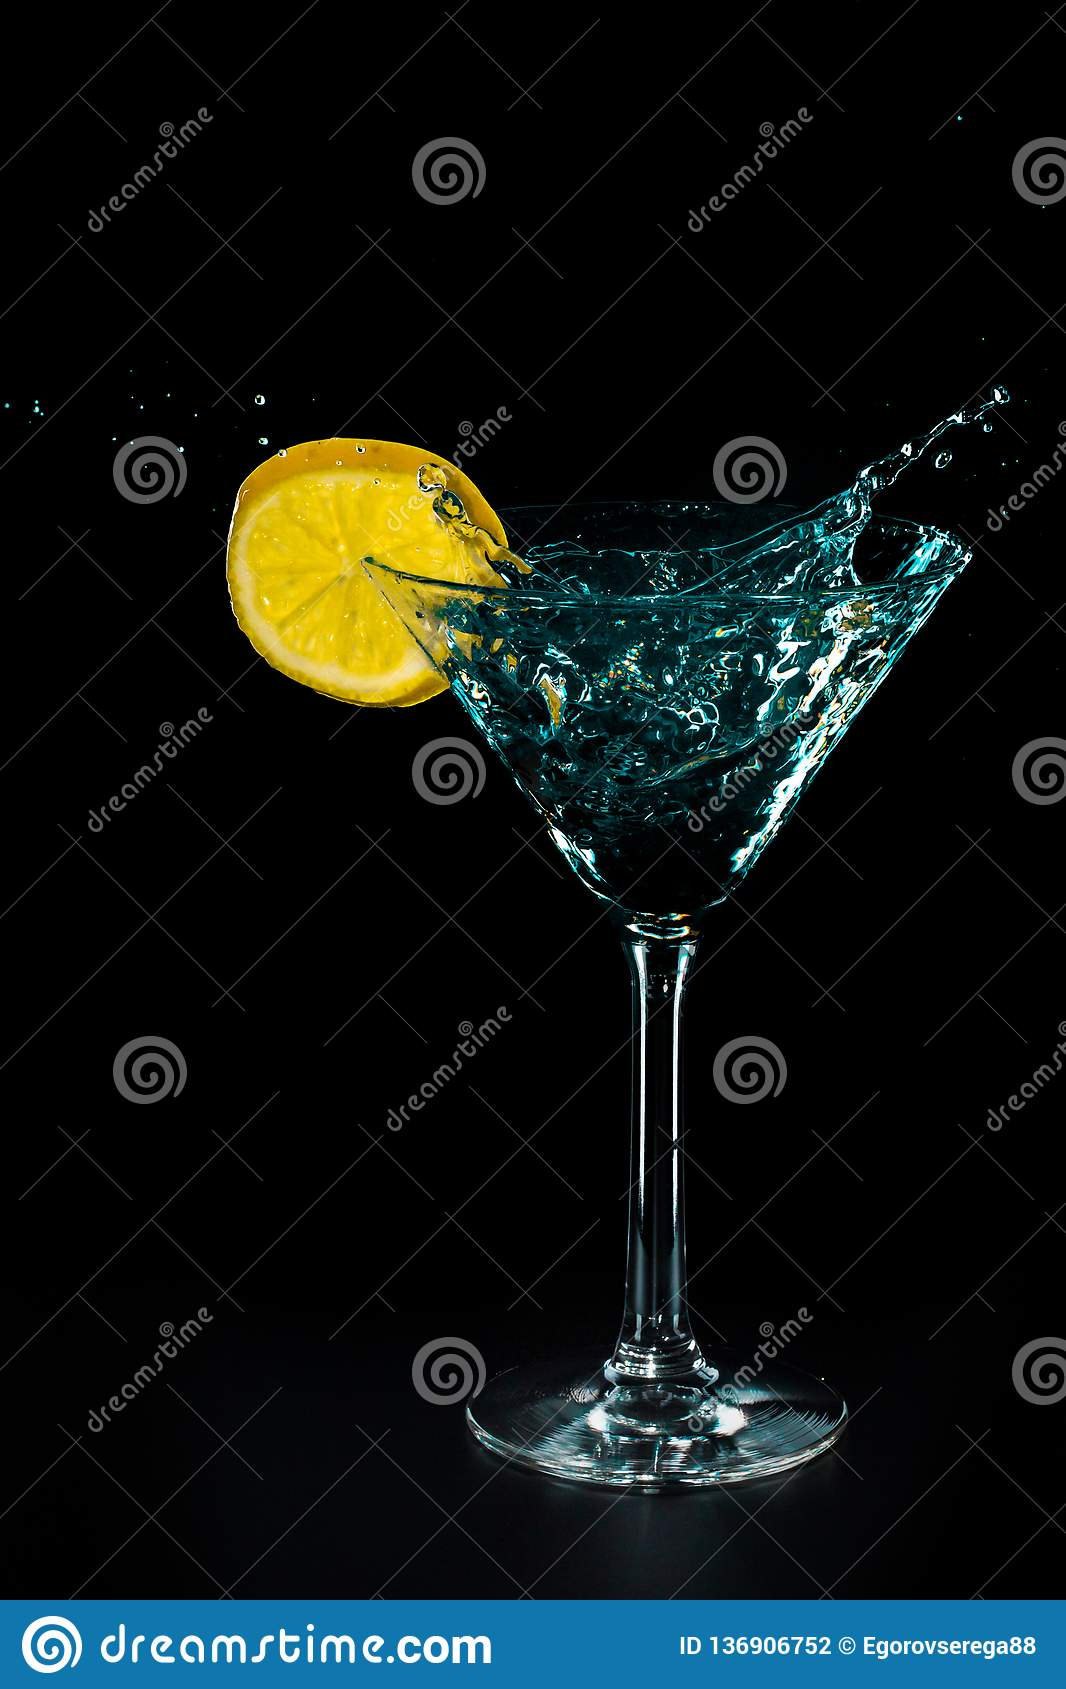 Blue cocktail water drink splash in the glass with lemon Isolated on black